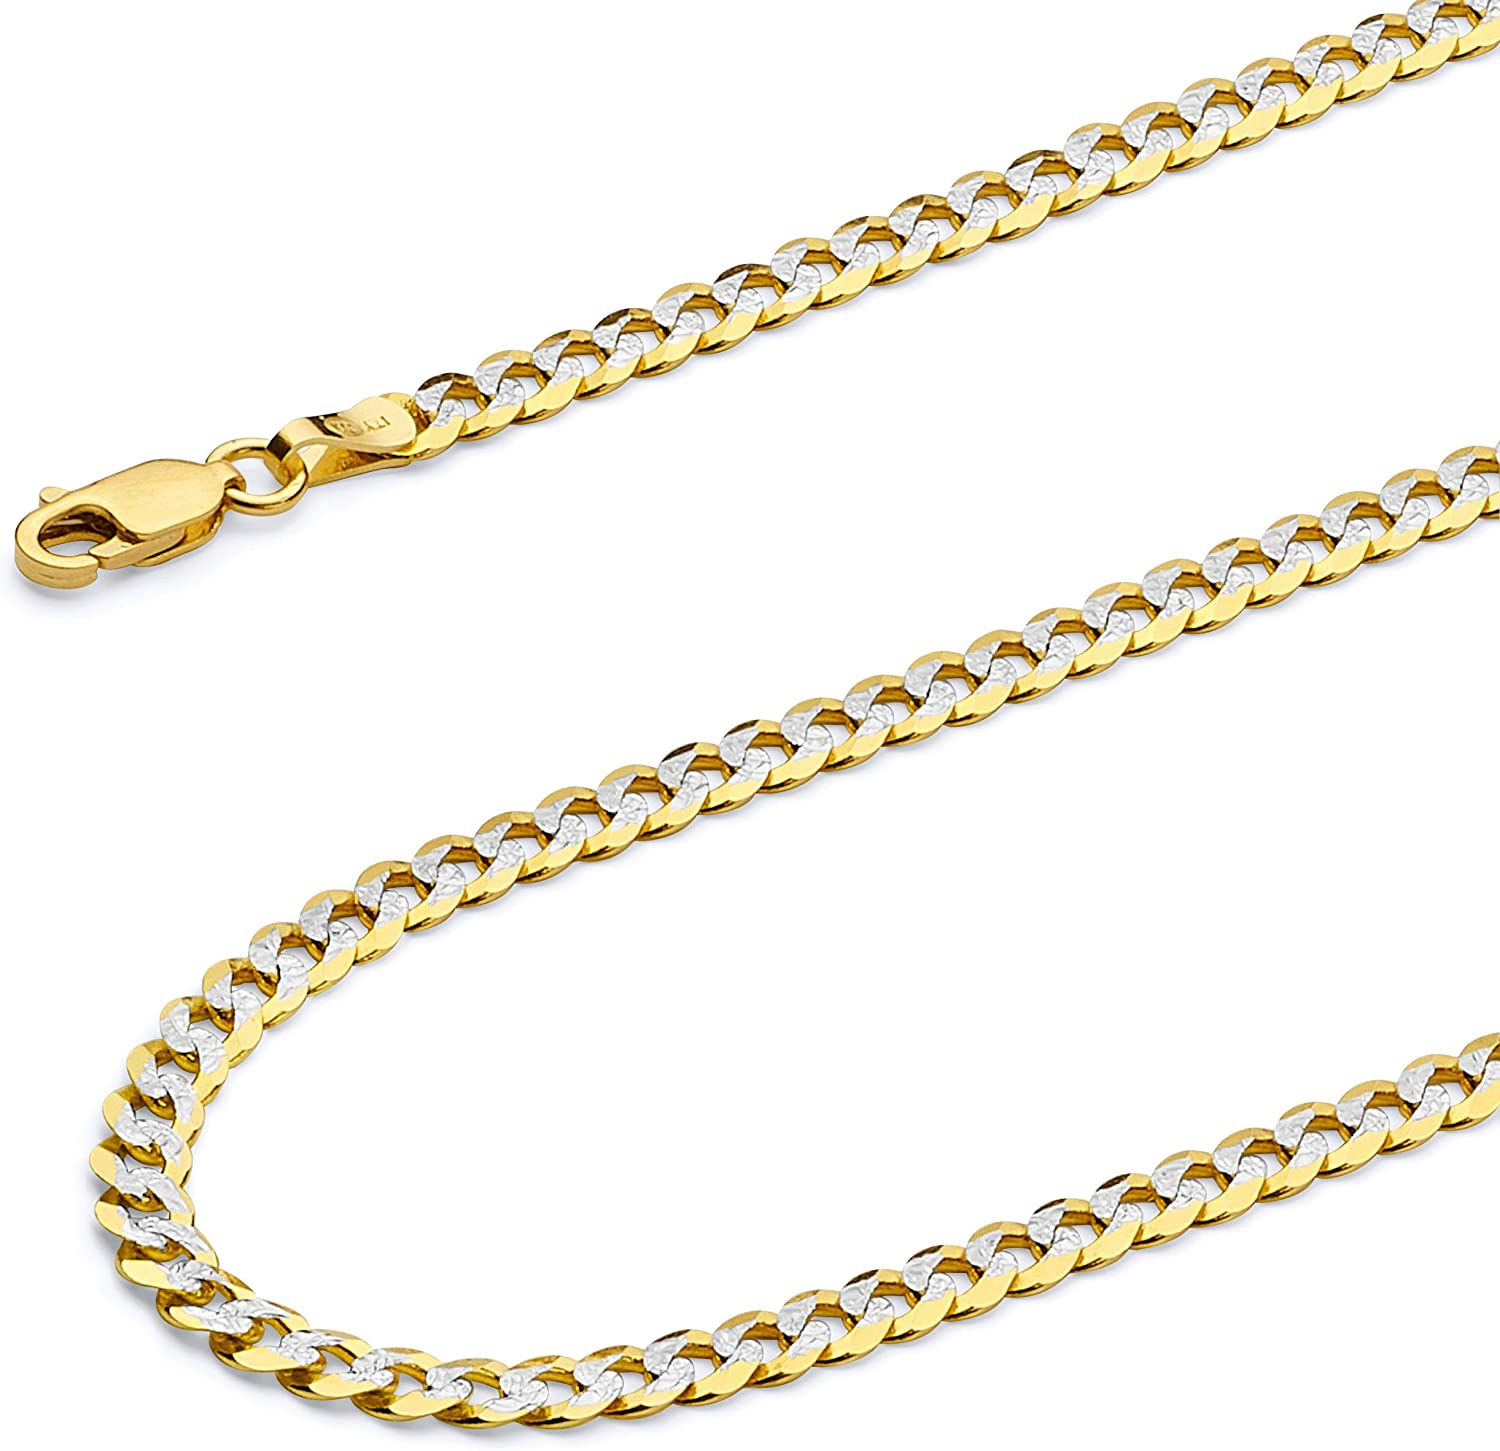 Wellingsale 14k Yellow Gold Polished White Pave 3mm ID Figaro Bracelet with Lobster Claw Clasp 6